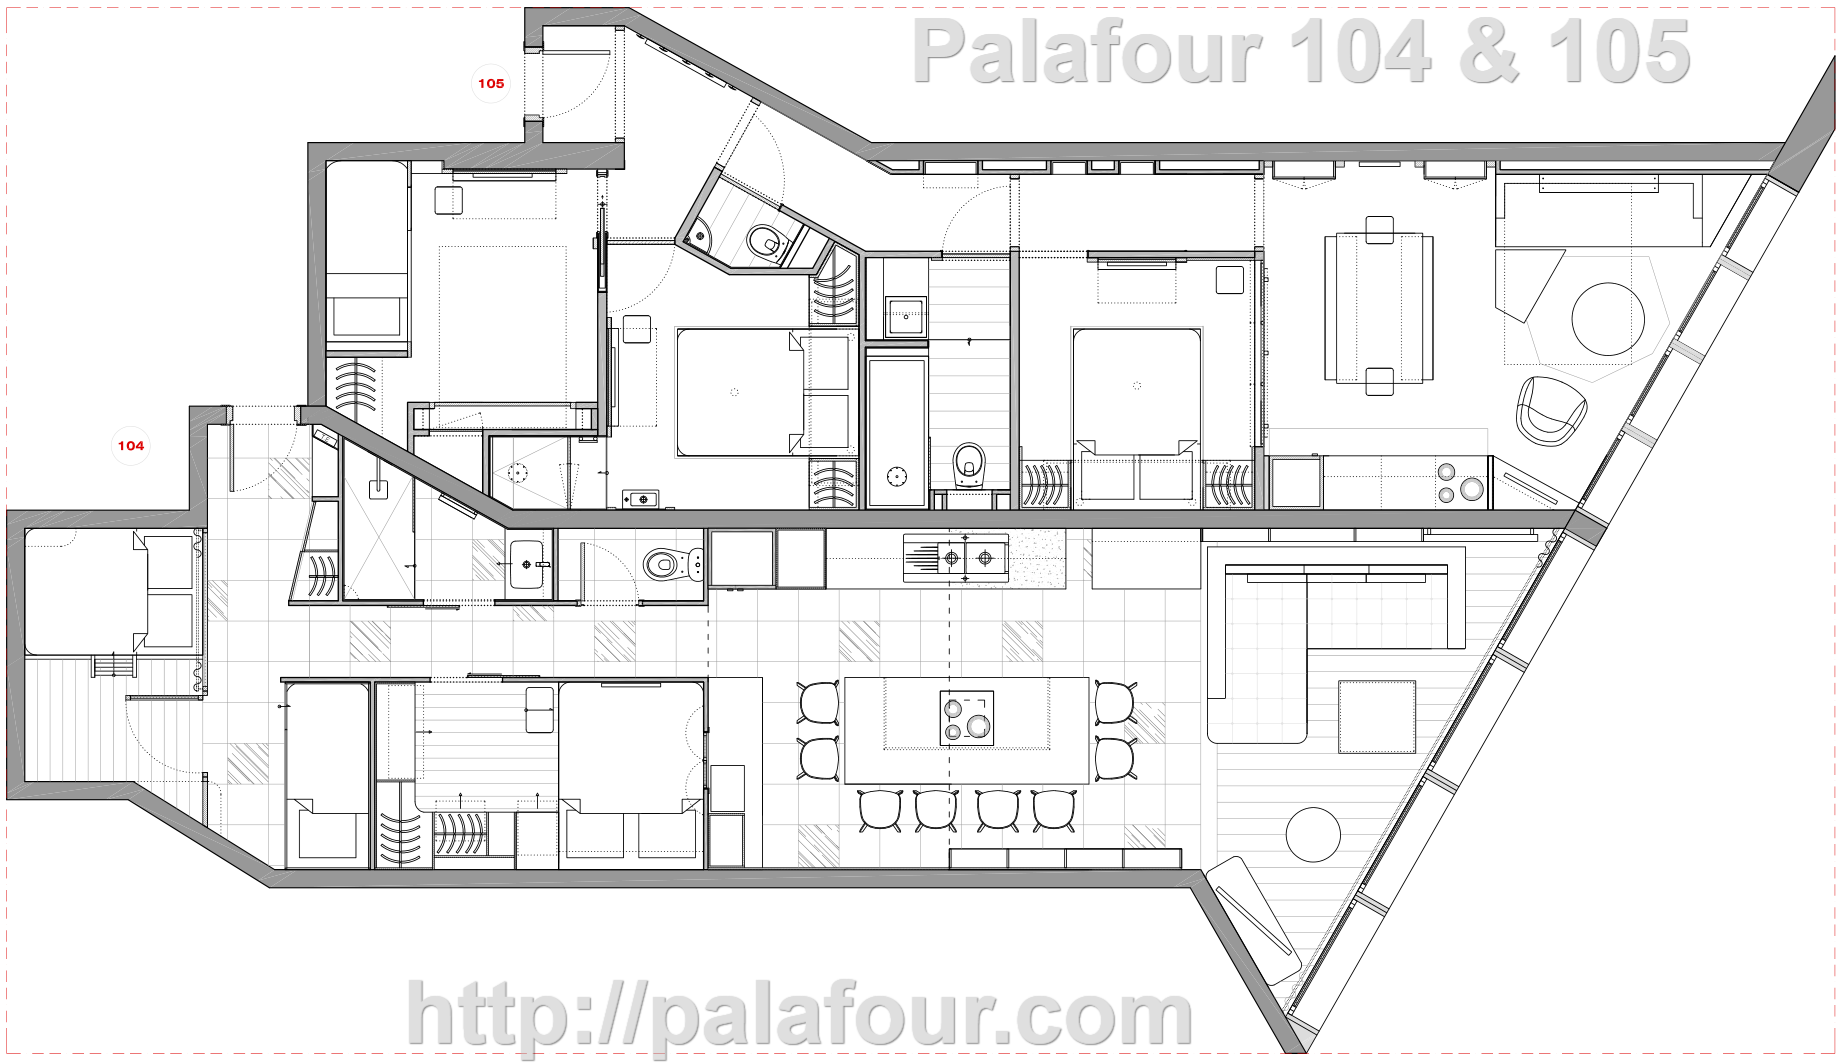 Plan of the adjoining apartments Palafour 104 and Palafour 105